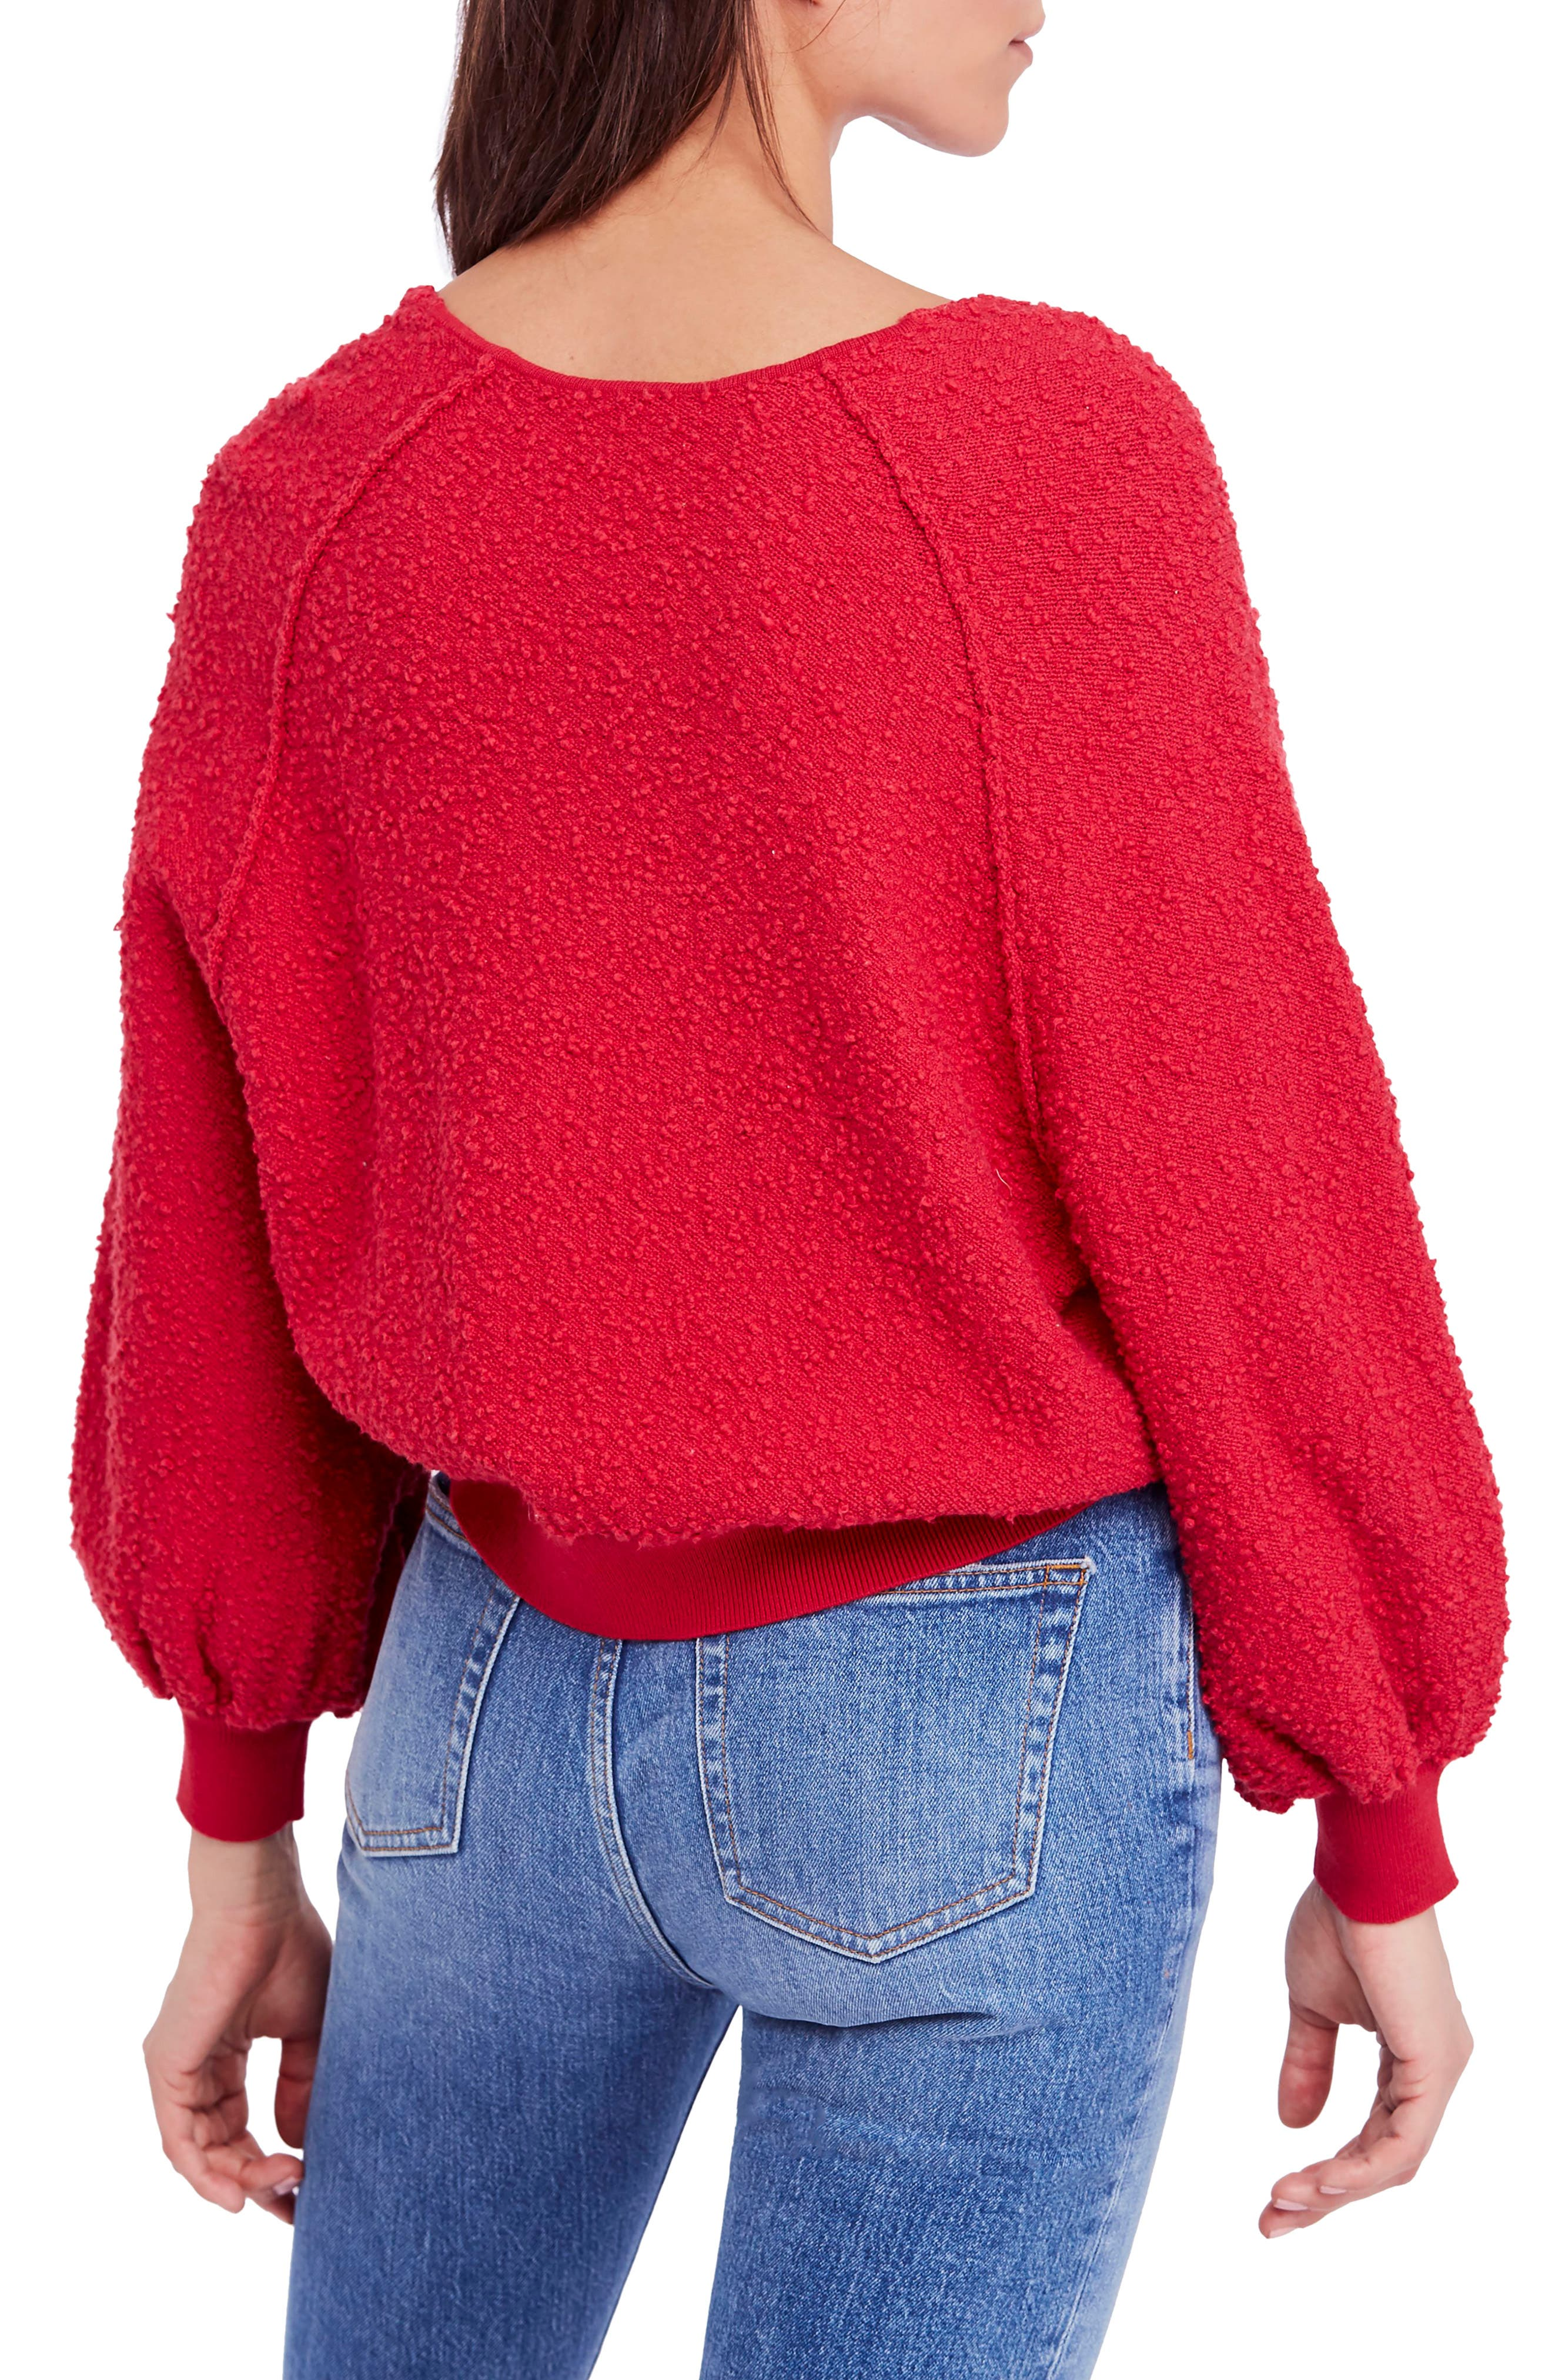 Found My Friend Sweater,                             Alternate thumbnail 2, color,                             Red